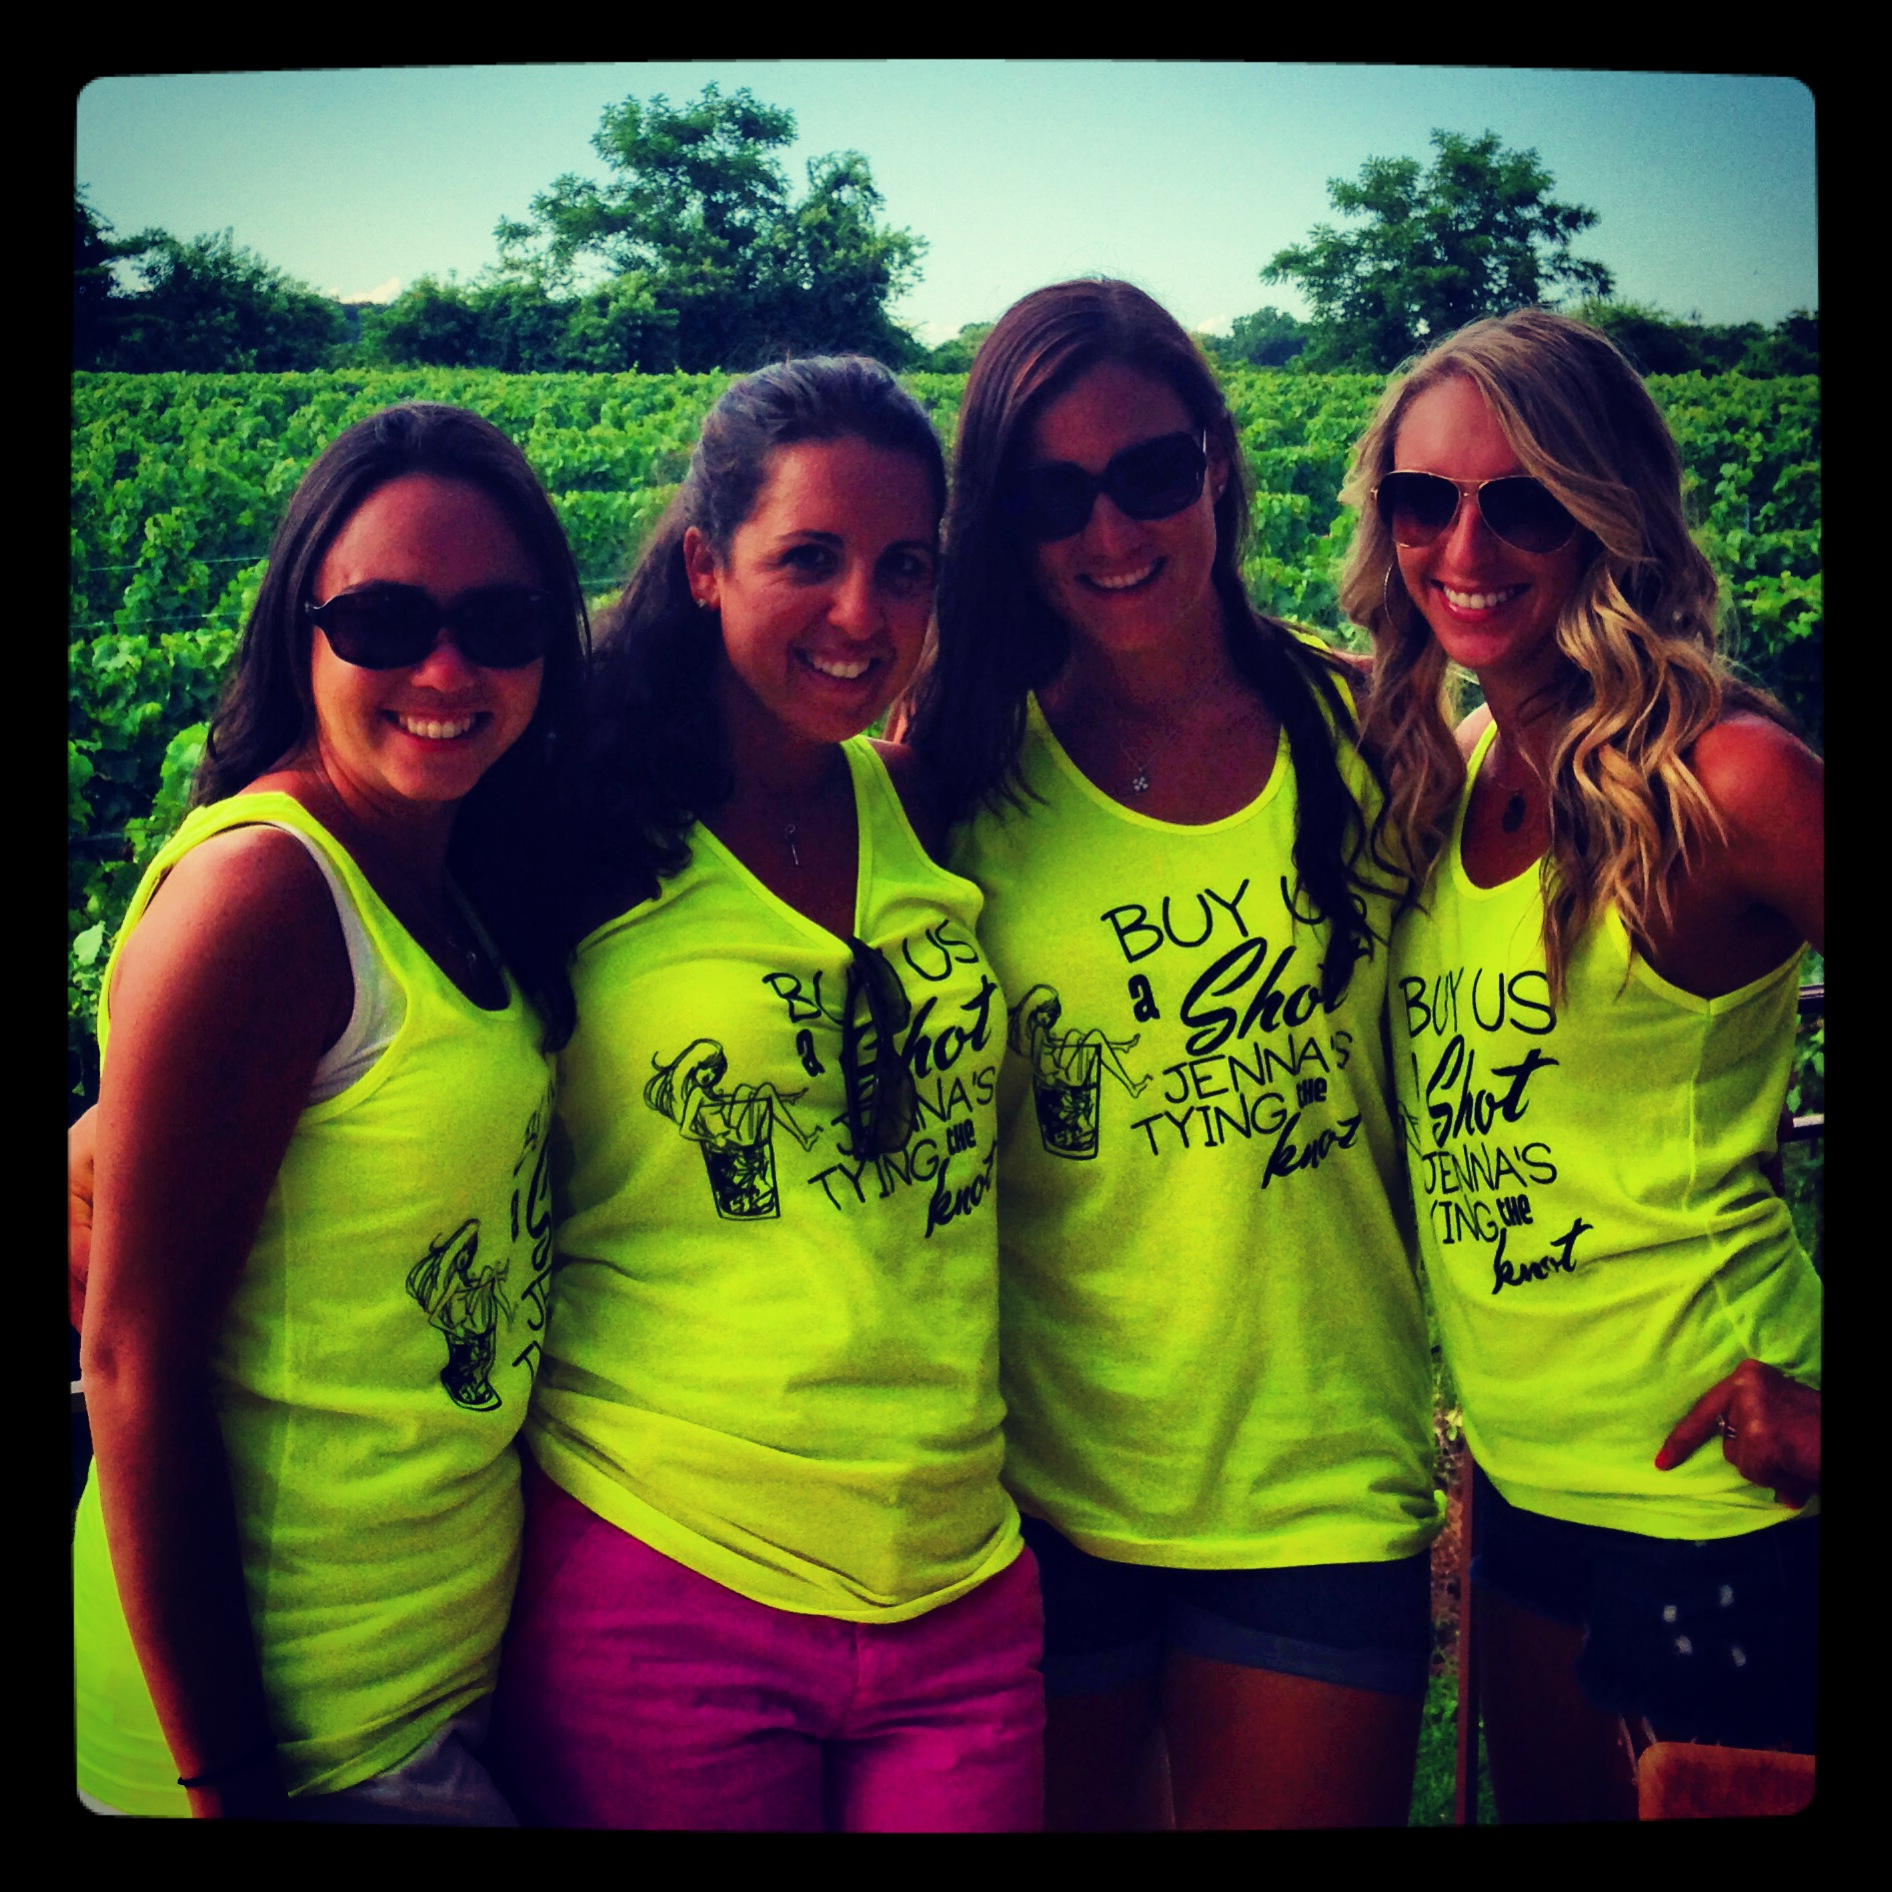 5d7d2e3b2b0 Custom T-Shirts for Bachelorette Party Goes To A Winery - Shirt ...